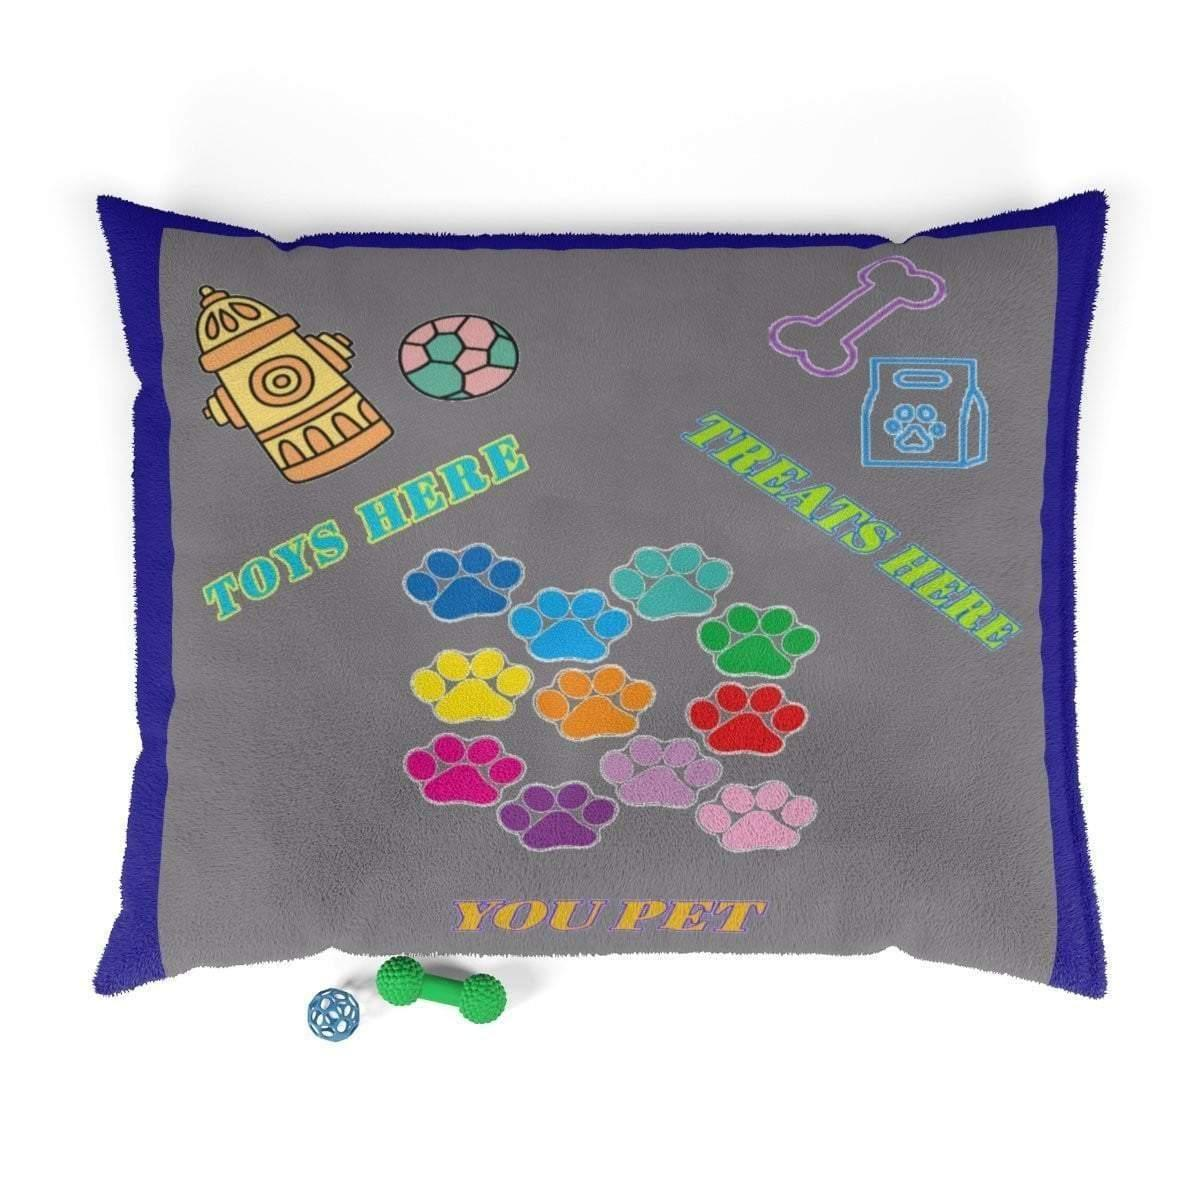 Doggyhookup.com Presents *Spoiled Pets*: Pet Bed - Tie-Fly